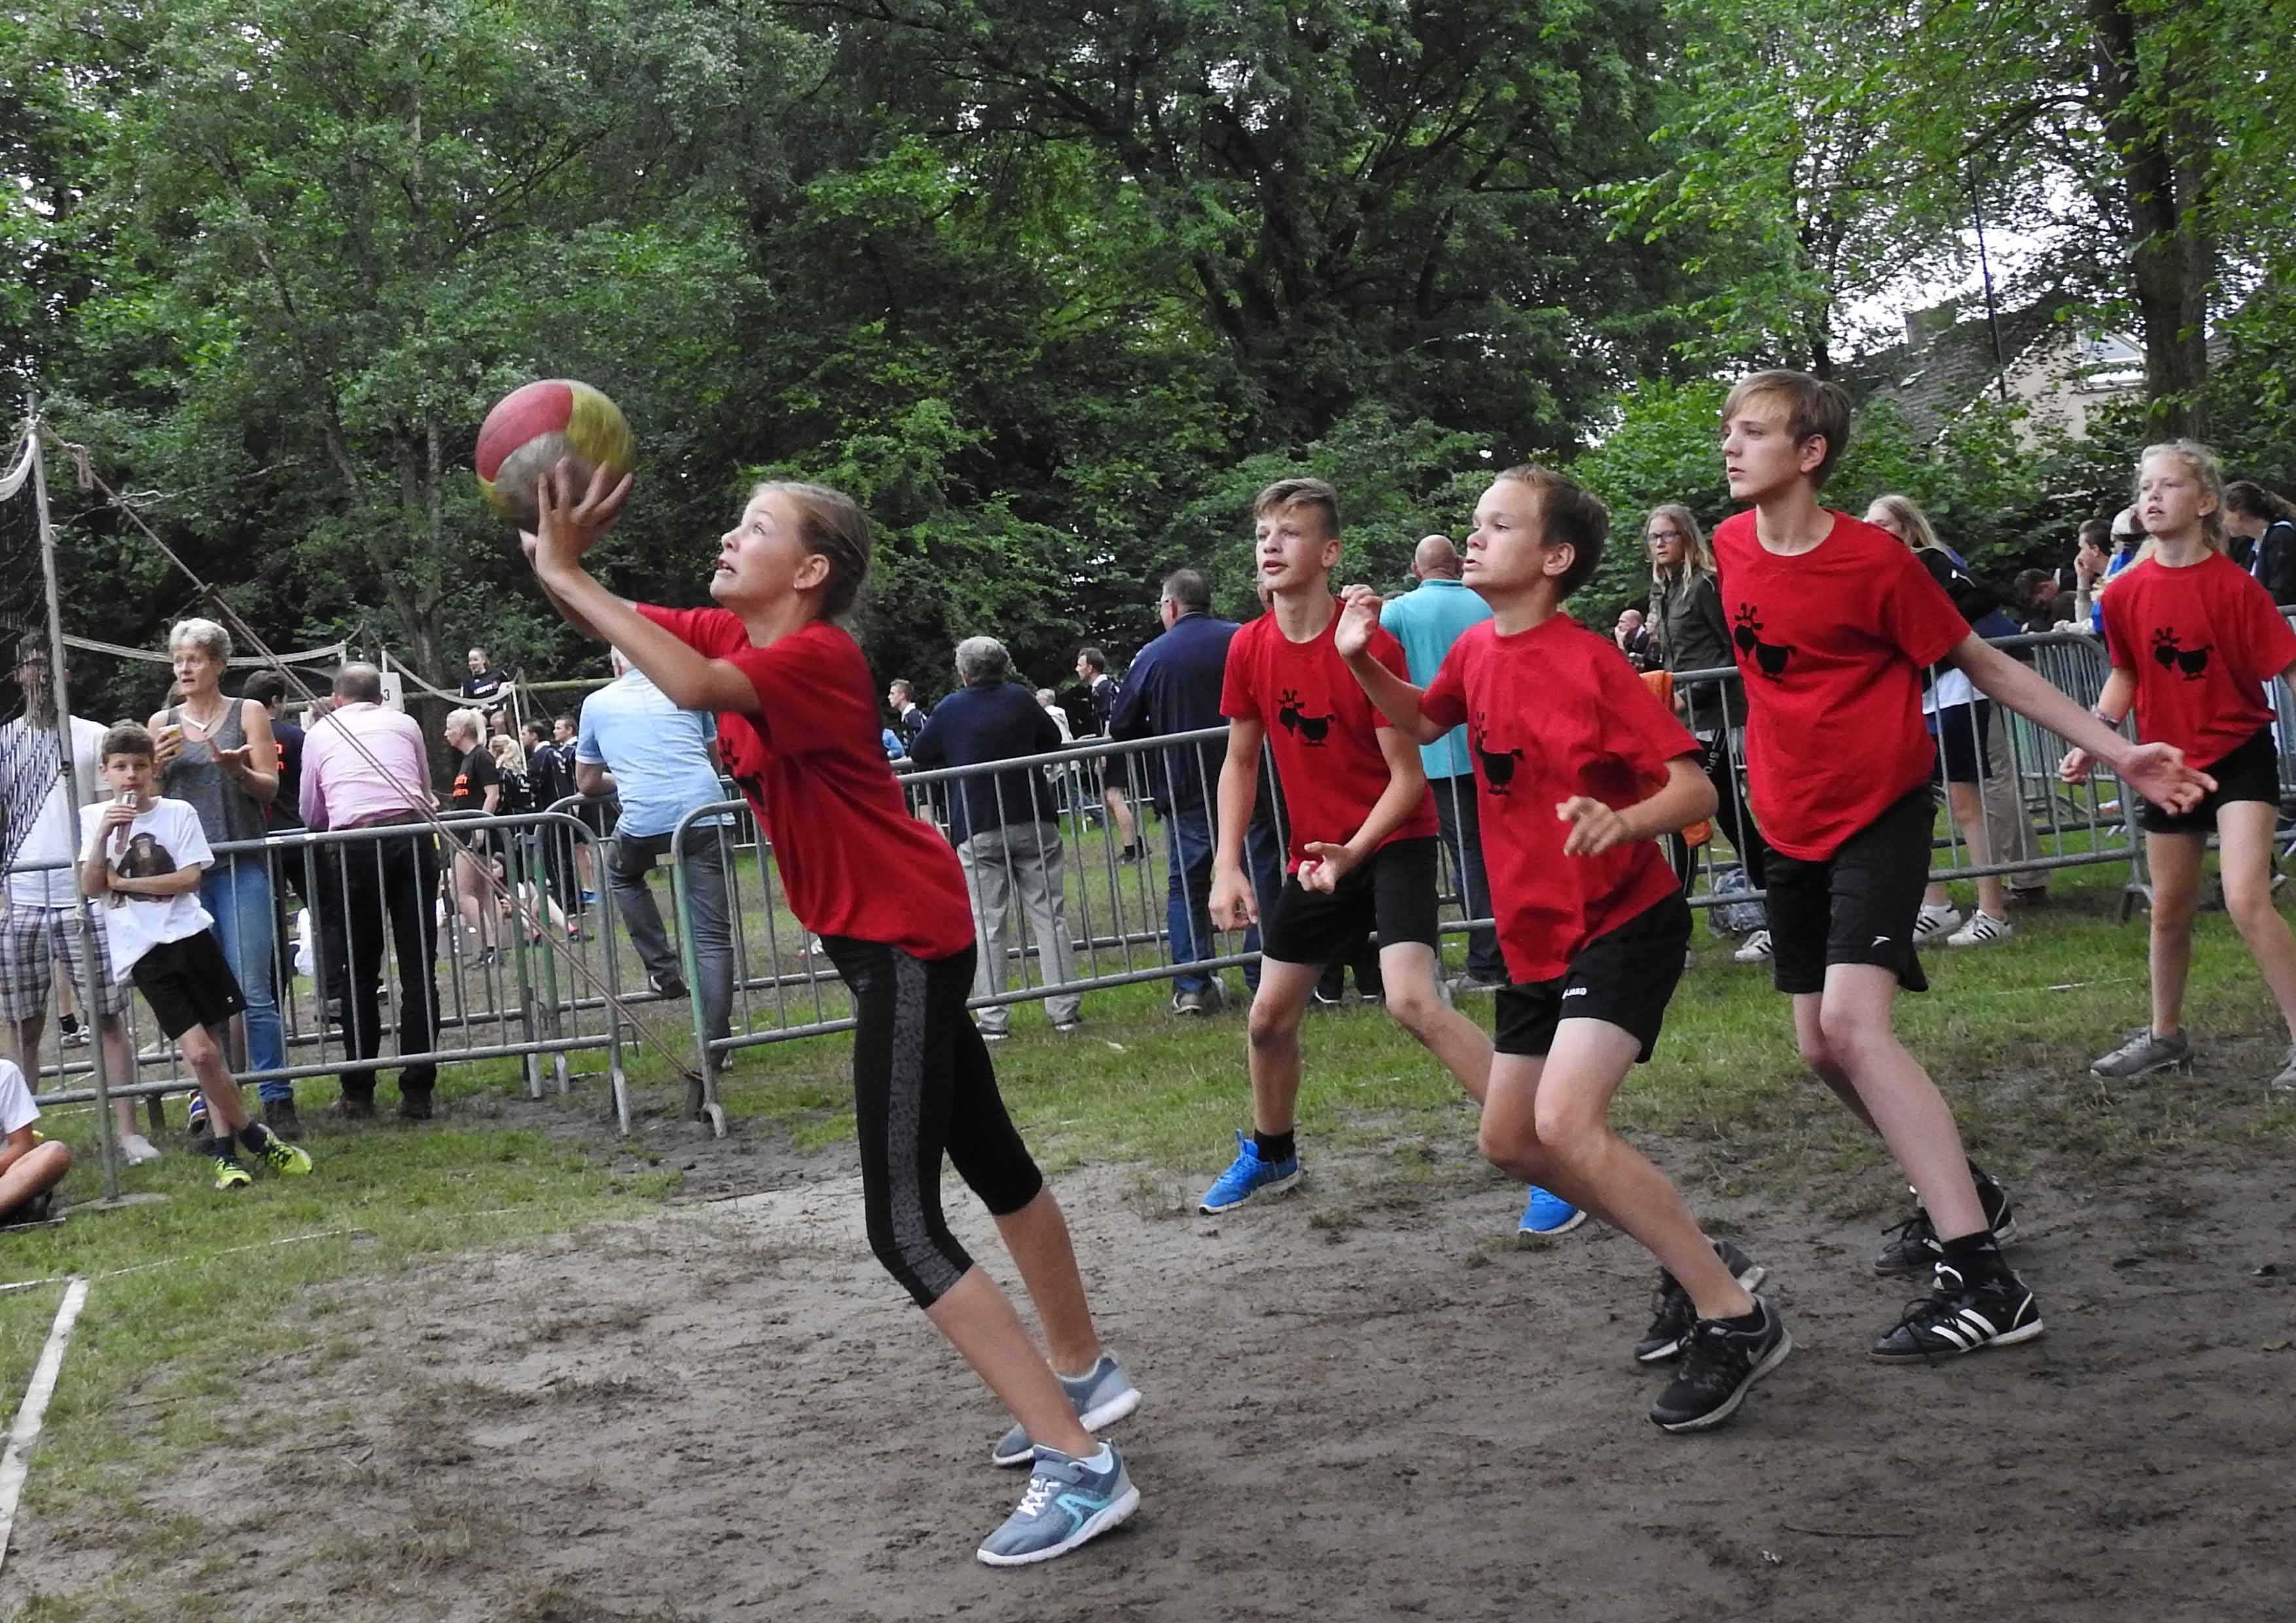 2017-06-29_BB_Straatvolleybal (47)